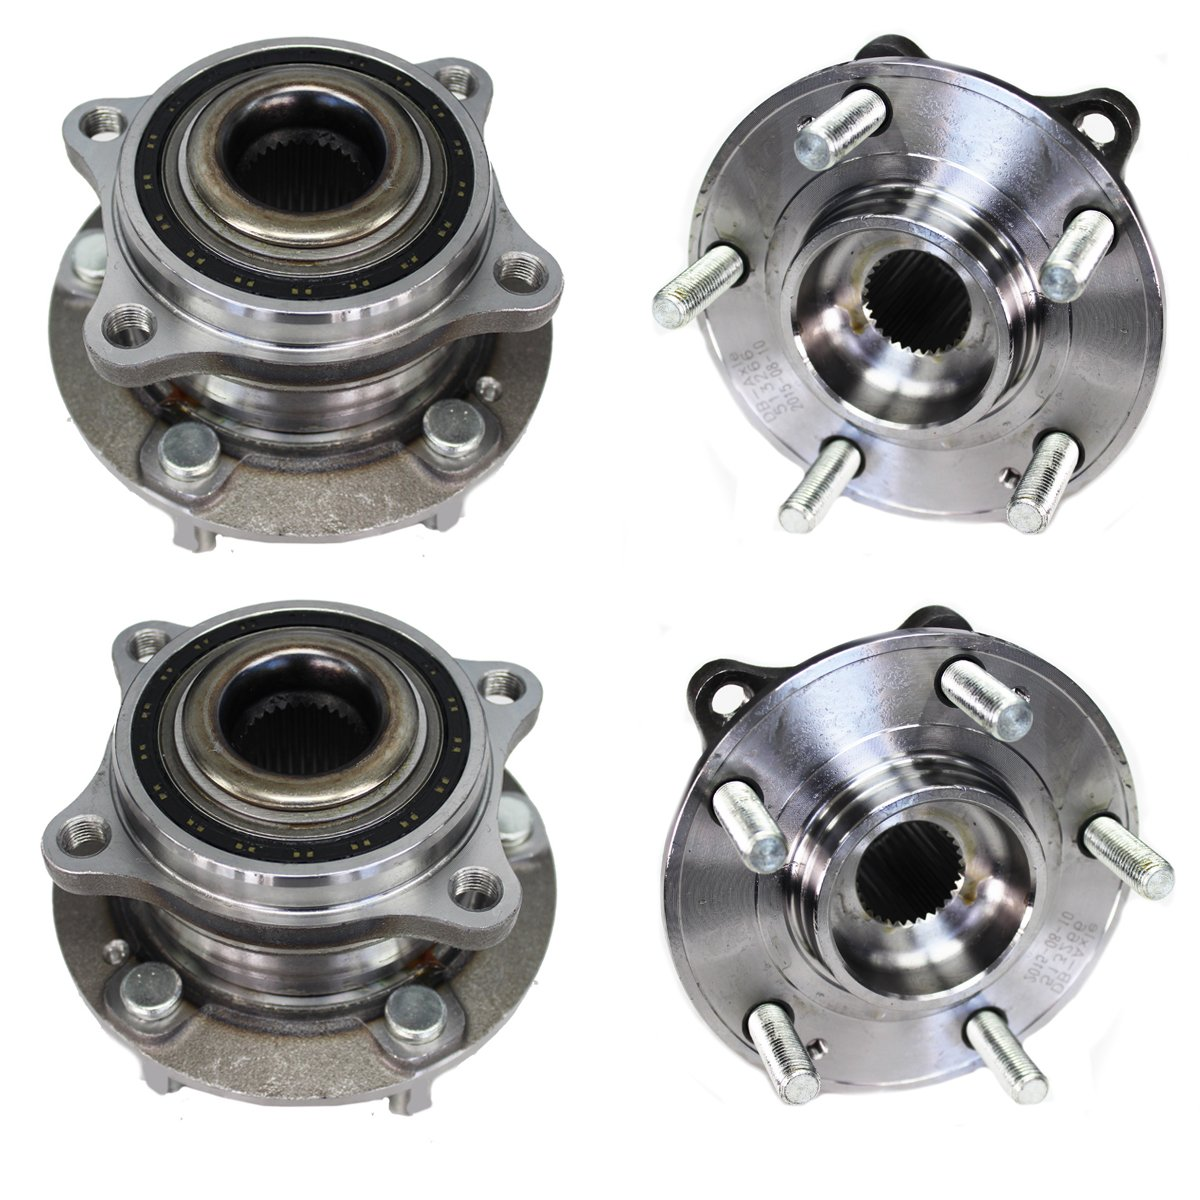 Detroit Axle - Front & Rear Wheel Bearing and Hub Assembly Set for 2007 2008 2009 2010 2011 2012 2013 2014 2015 2016 Hyundai Santa Fe AWD - [2007-2012 Hyundai Veracruz AWD] - 2011-2015 KIA Sorento AWD